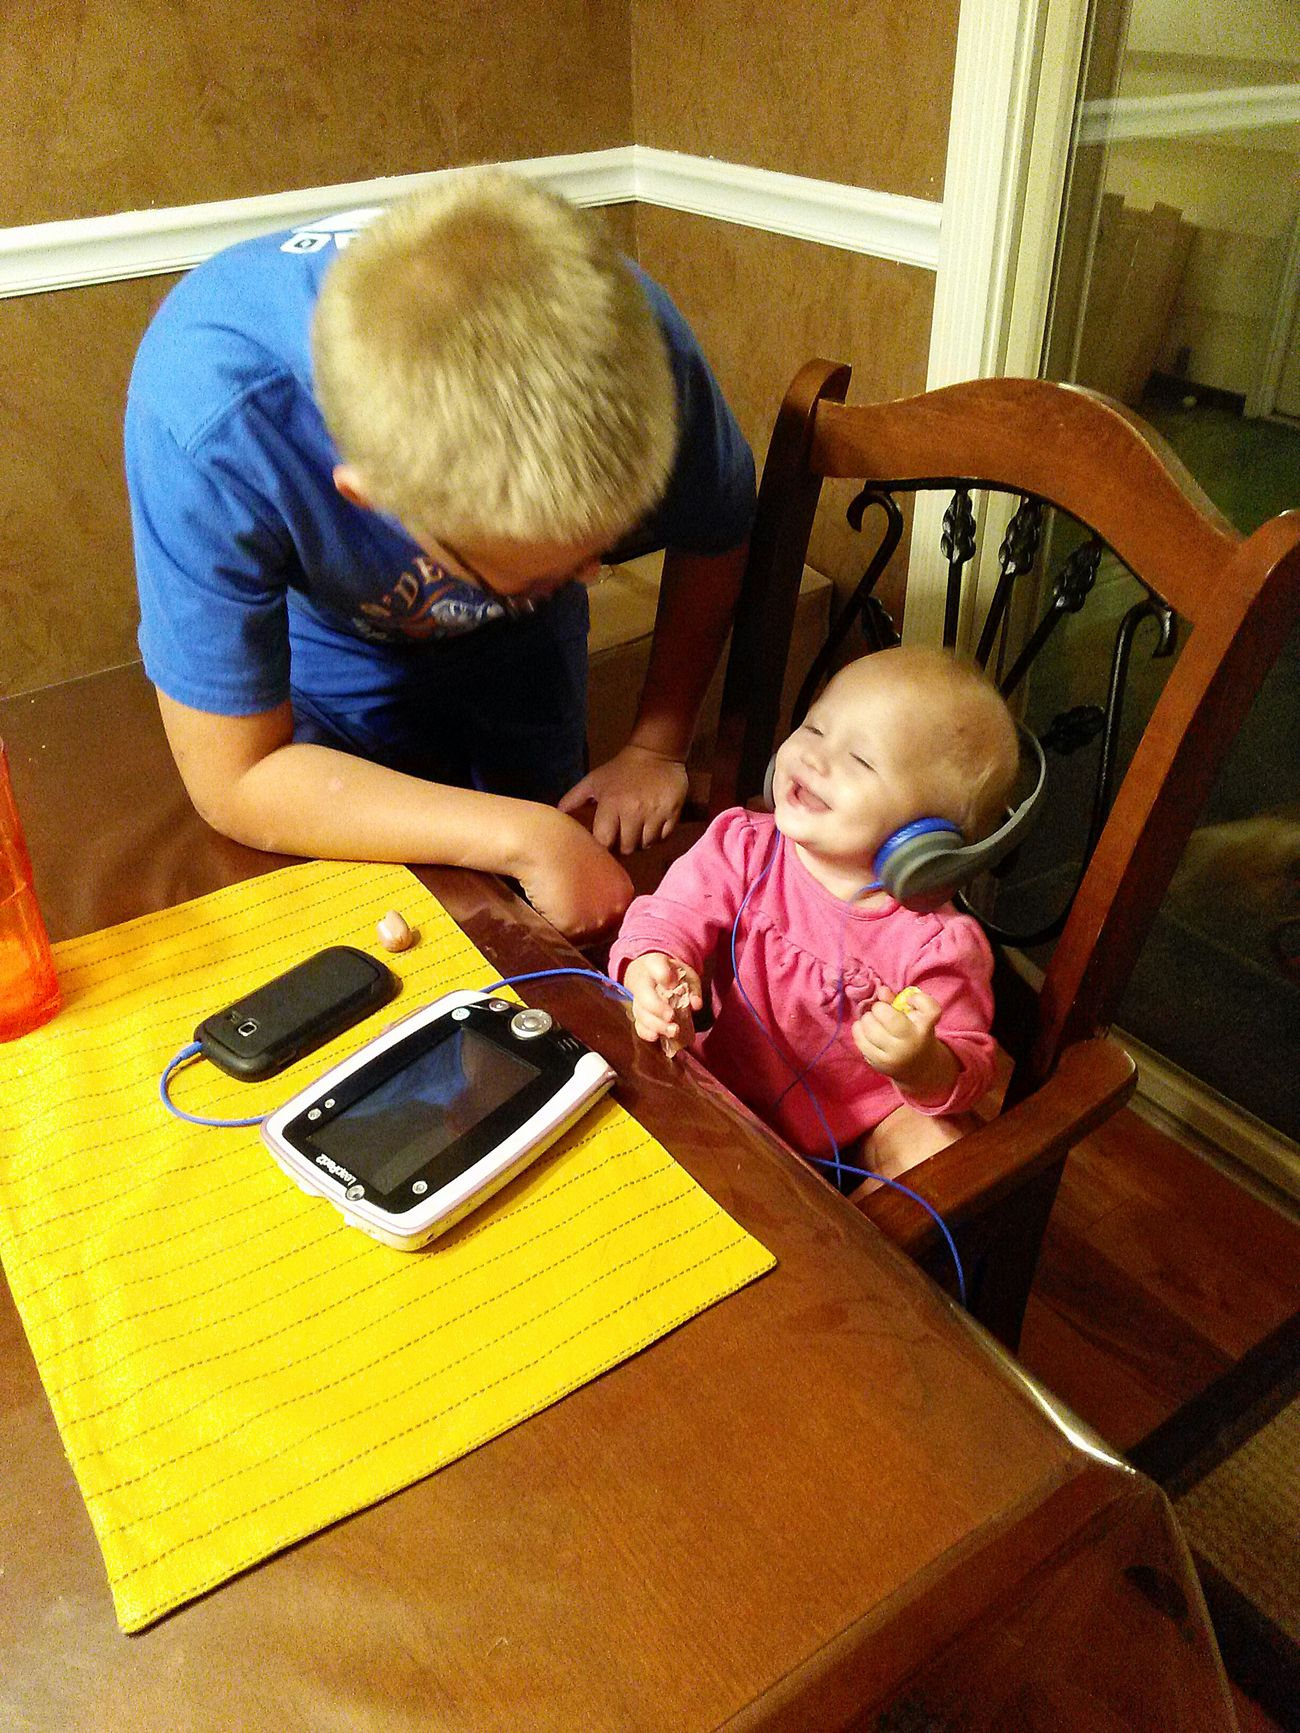 Photos That Will Restore Your Faith In Humanity This is My Son <3 & My Great Niece Cousins  sharing Headphones & Music💞 I took this @ the rental home while in Idaho for my niece's wedding. She just thought it was the Funniest thing ever. Fun Times ♥ Live, Love, Laugh but most of all Love ♥